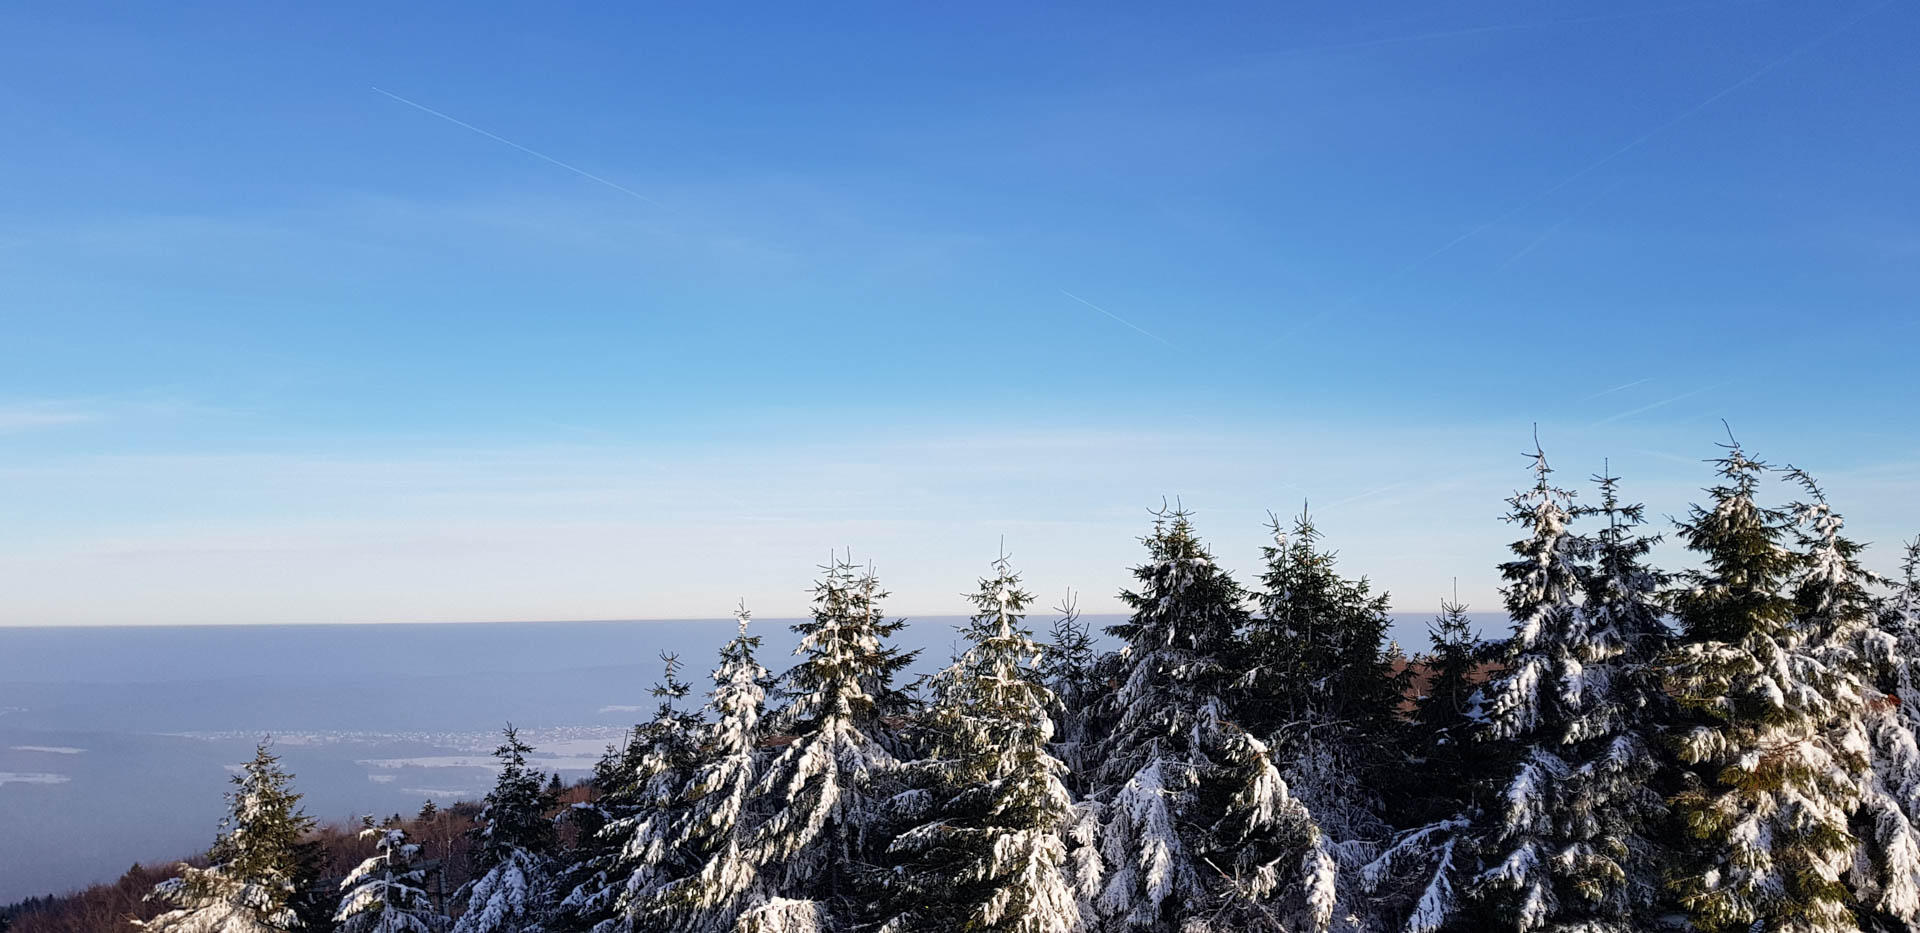 Feuerberg_Winter_2019-02-06-174